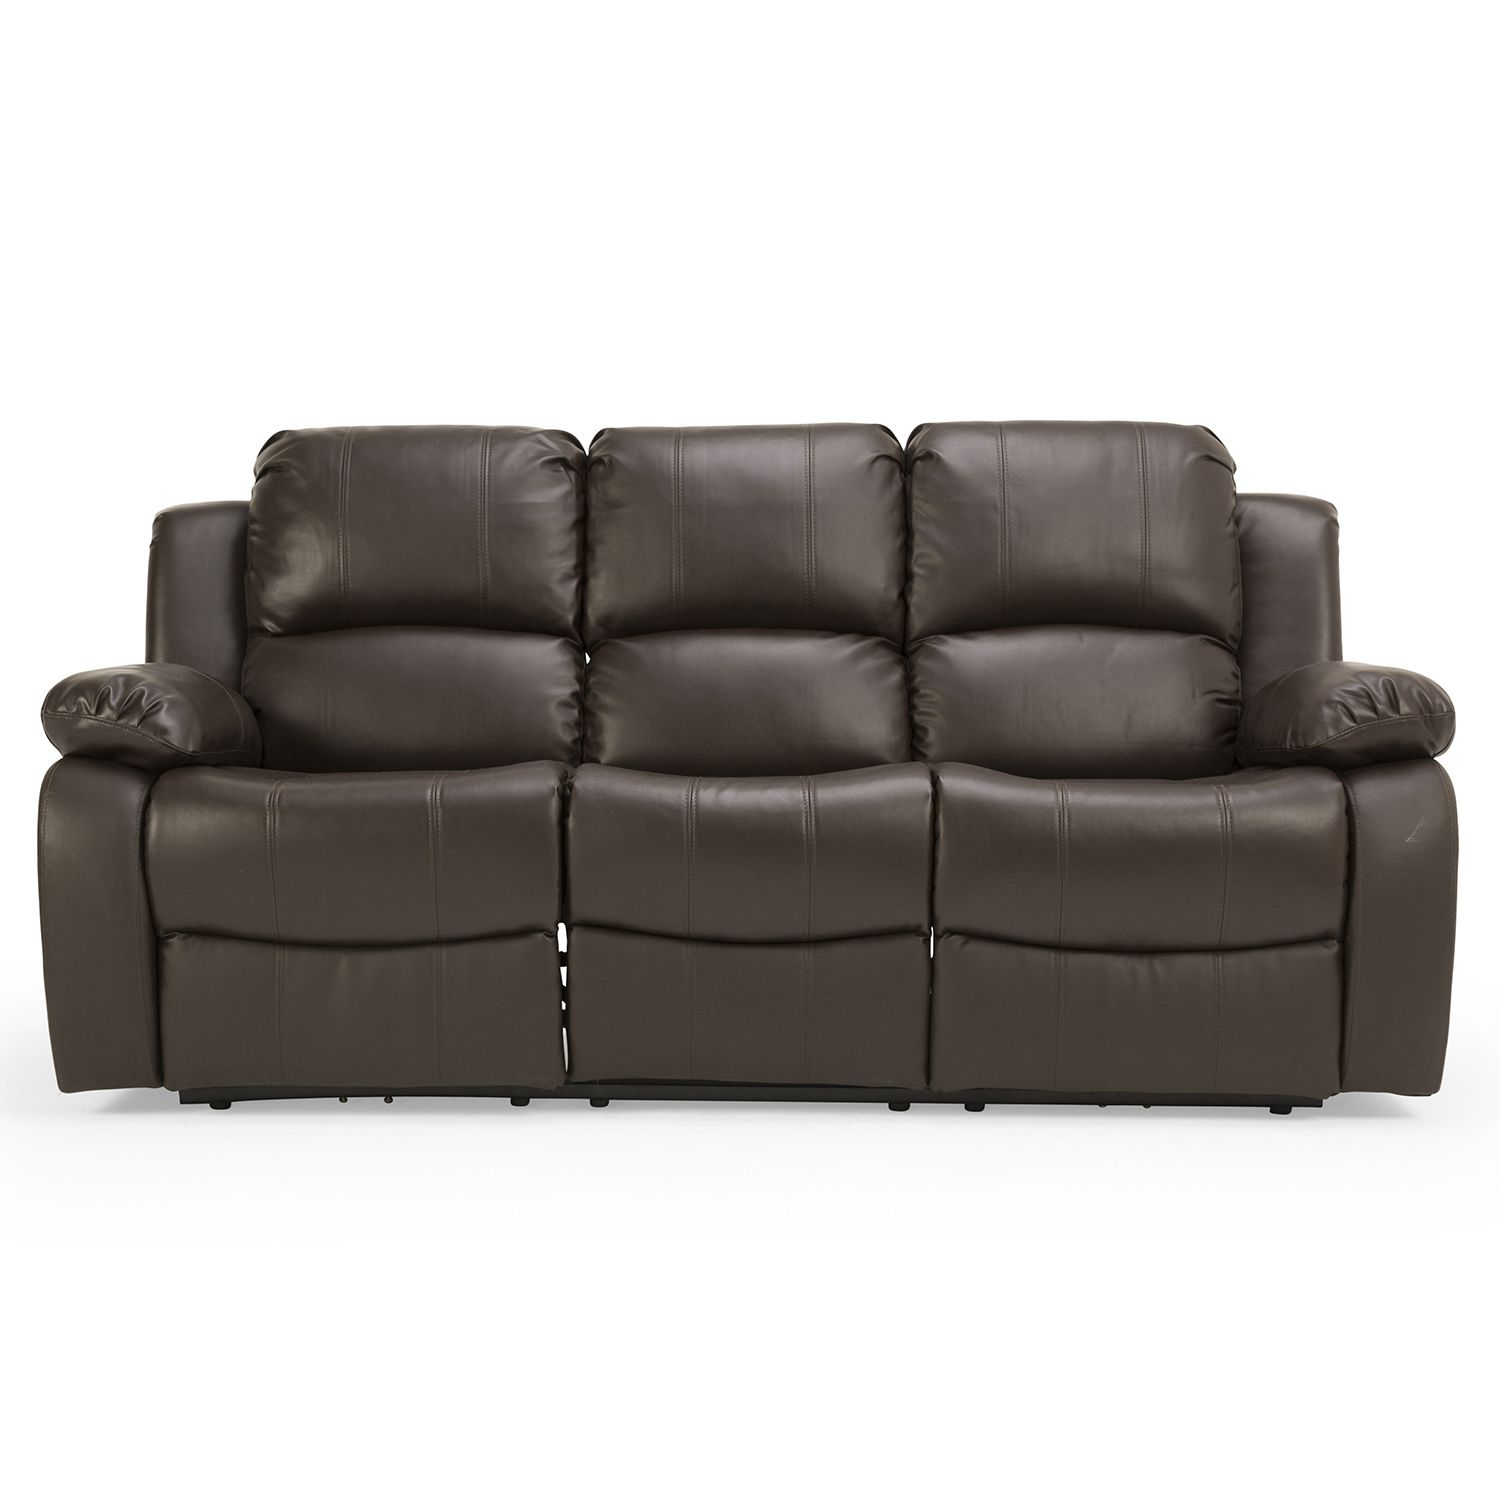 Cool Brown Leather Electric Recliner Sofa Magnificent Brown